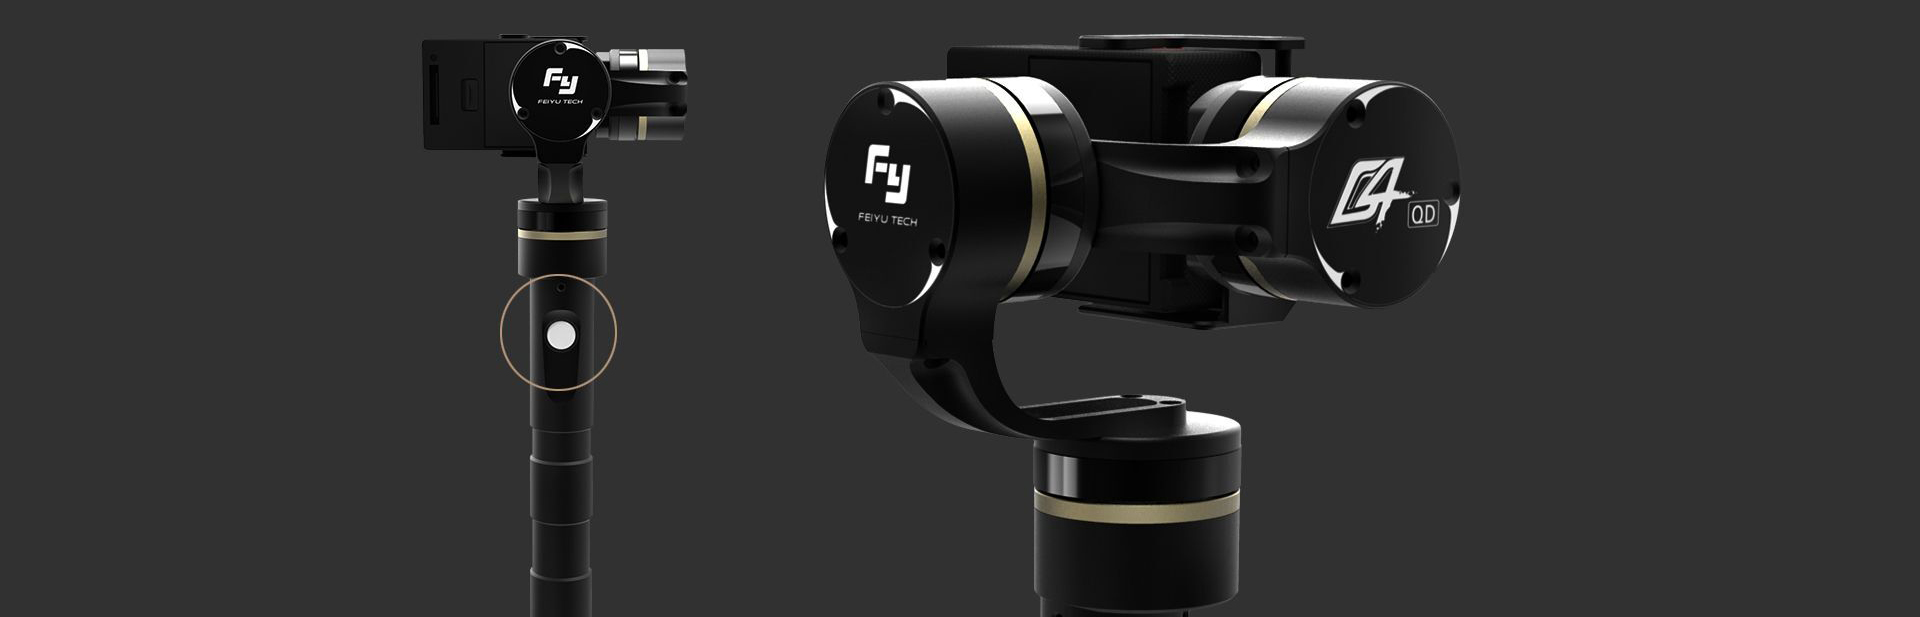 Feiyu G4QD – 3-axis stabilizer for Action cam